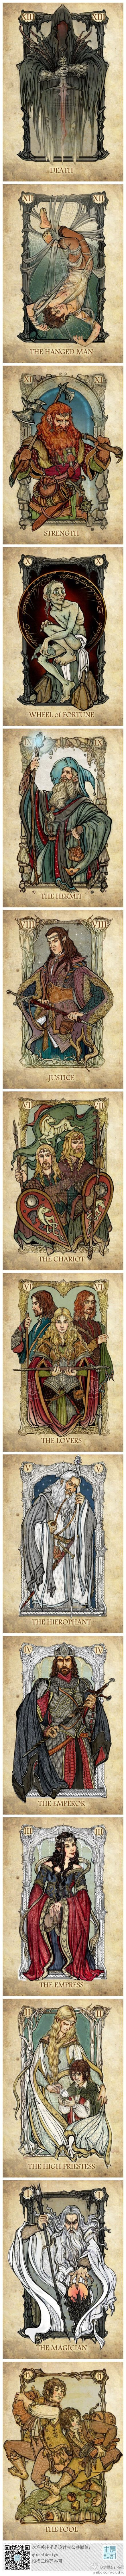 # Seeking love illustration # Lord of the Rings Tarot, by: Scei ...